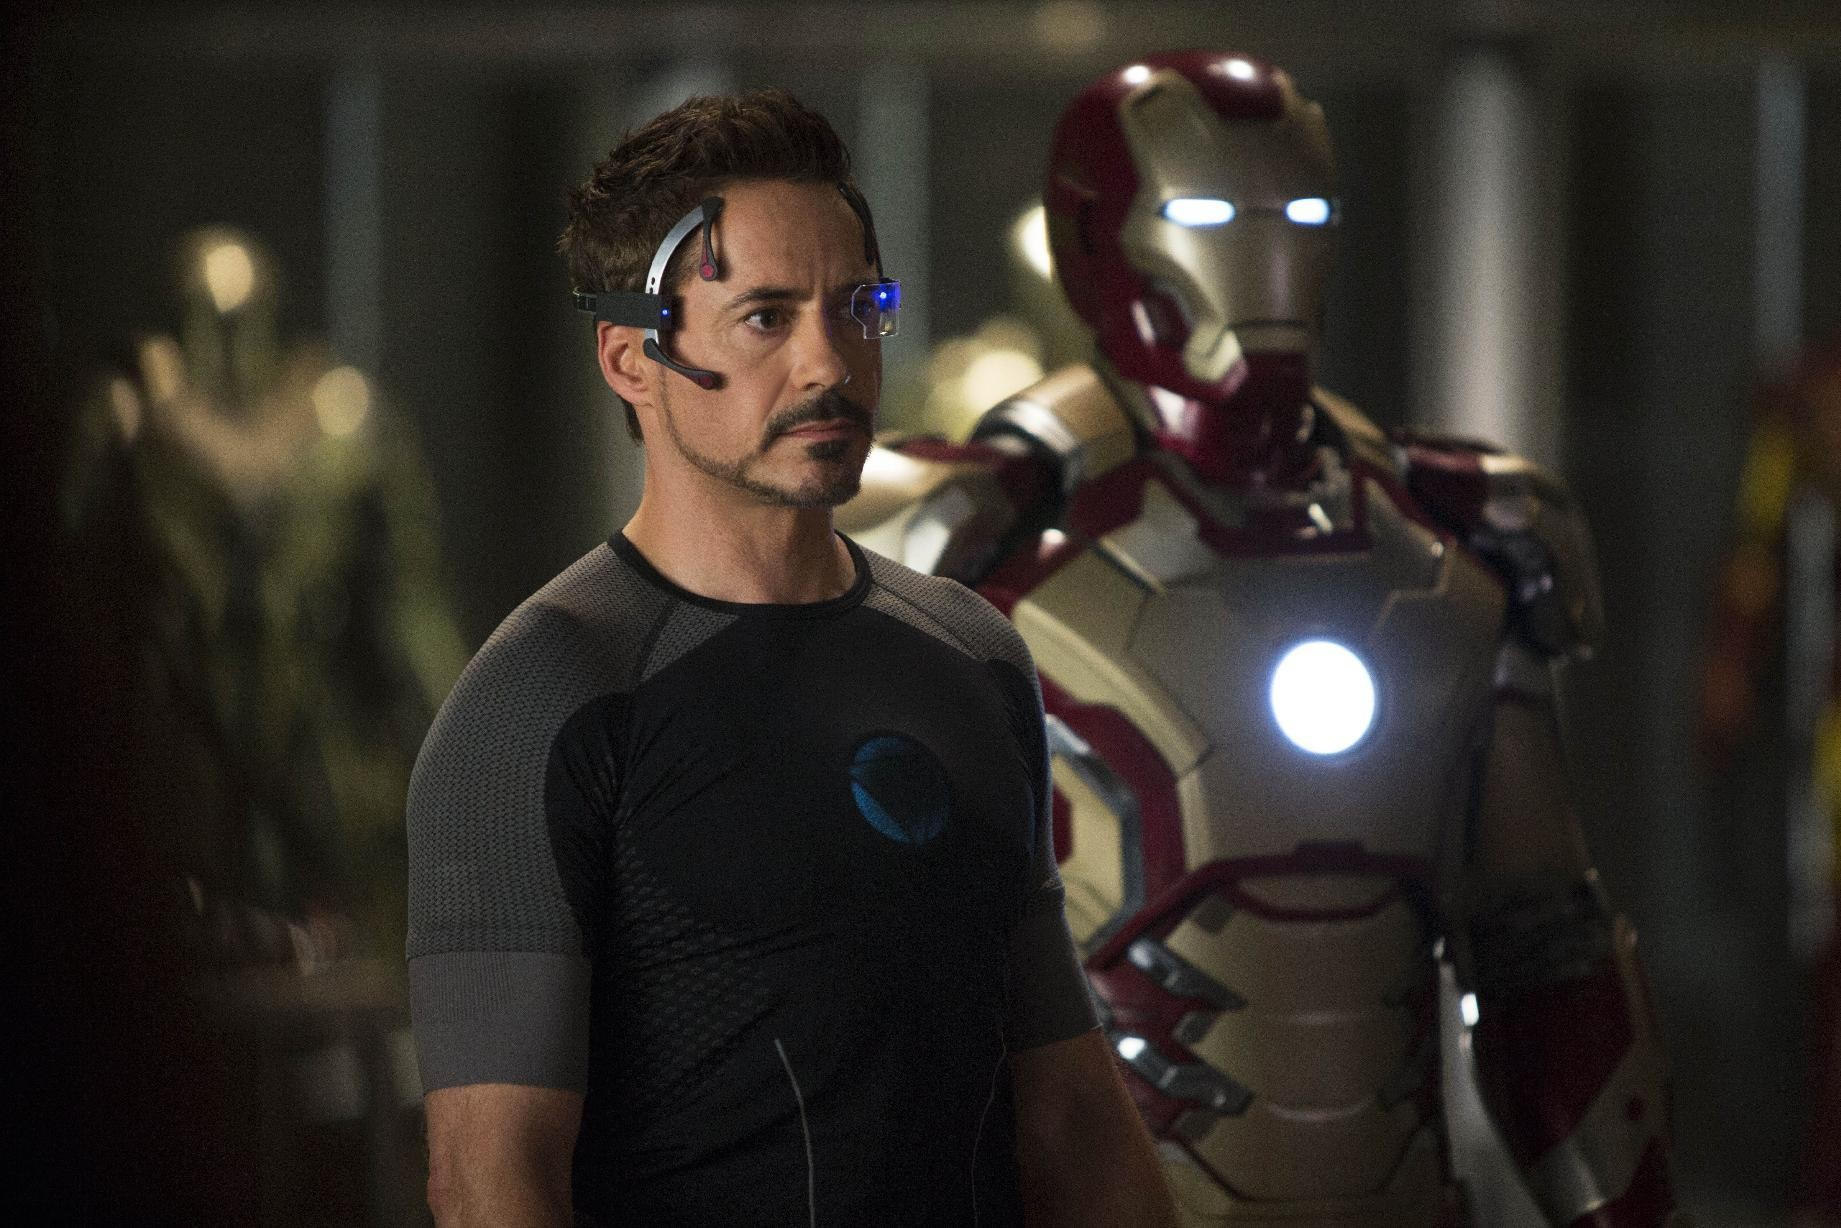 Superhero Robert Downey Jr. Tops the 'Forbes' List of Highest-Paid Actors...Again